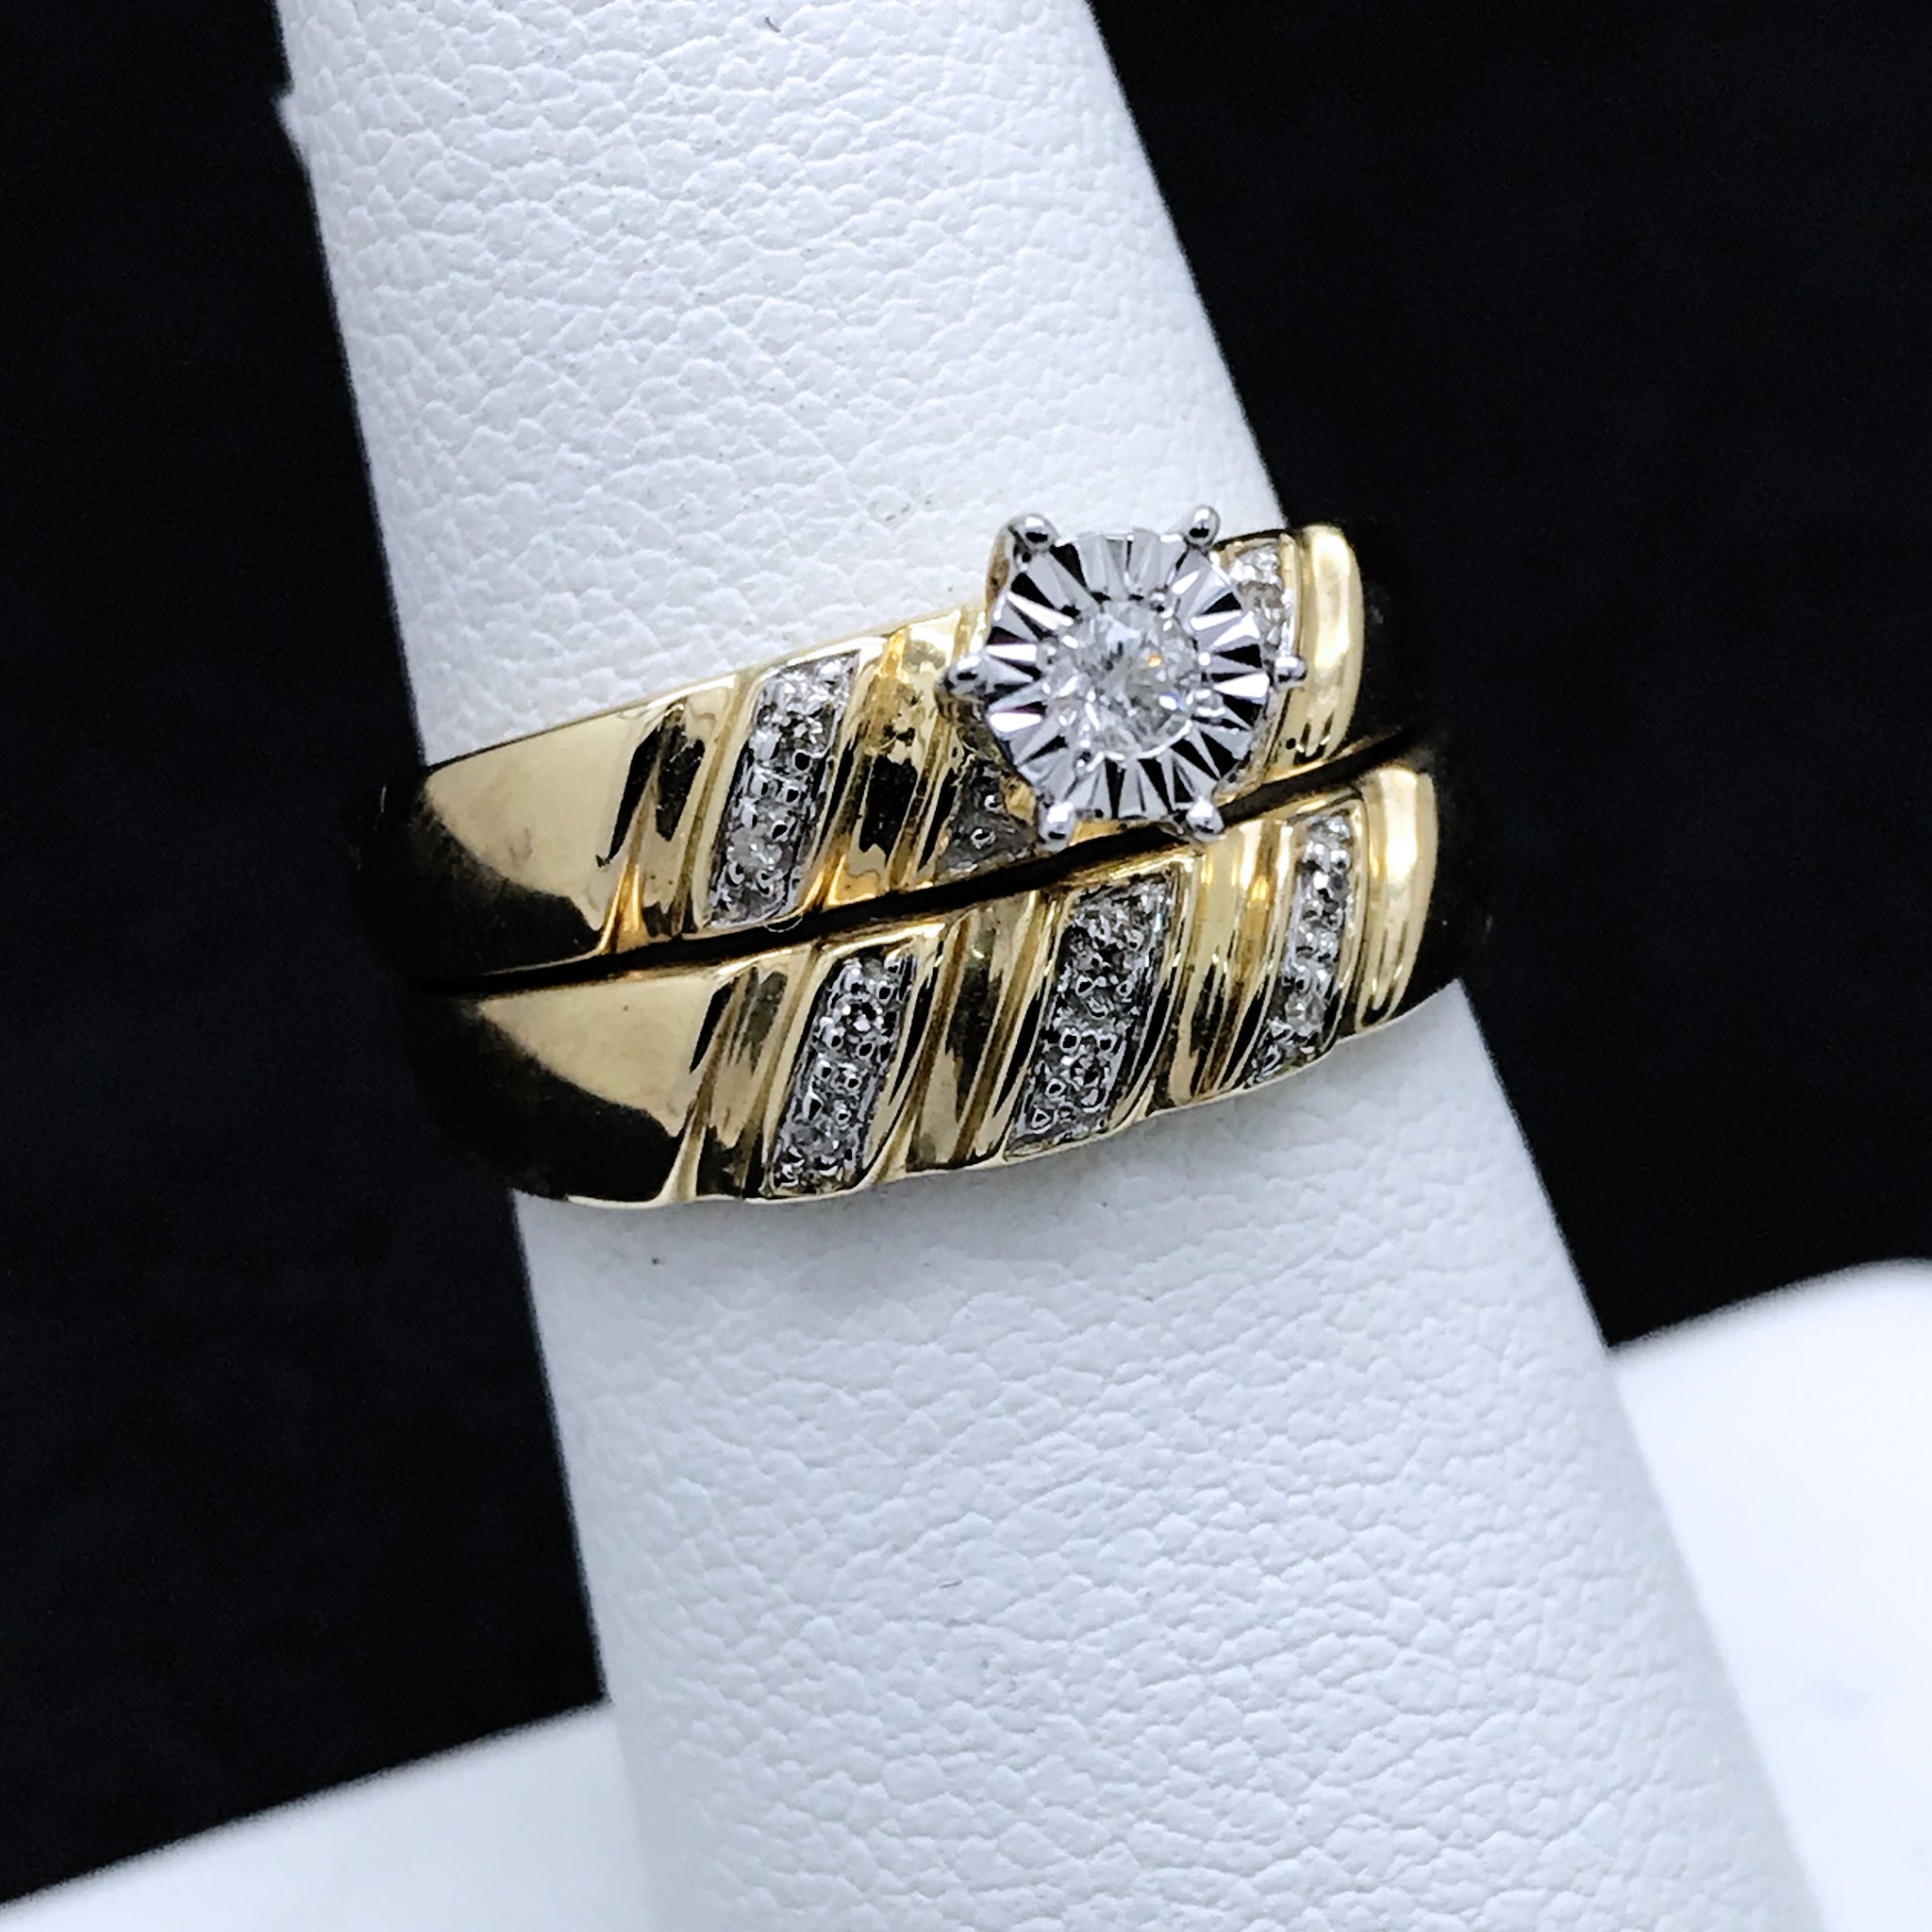 Set de Matrimonio de Dama de Oro Con Diamantes/Women's Diamond Wedding Set in 10KT Gold